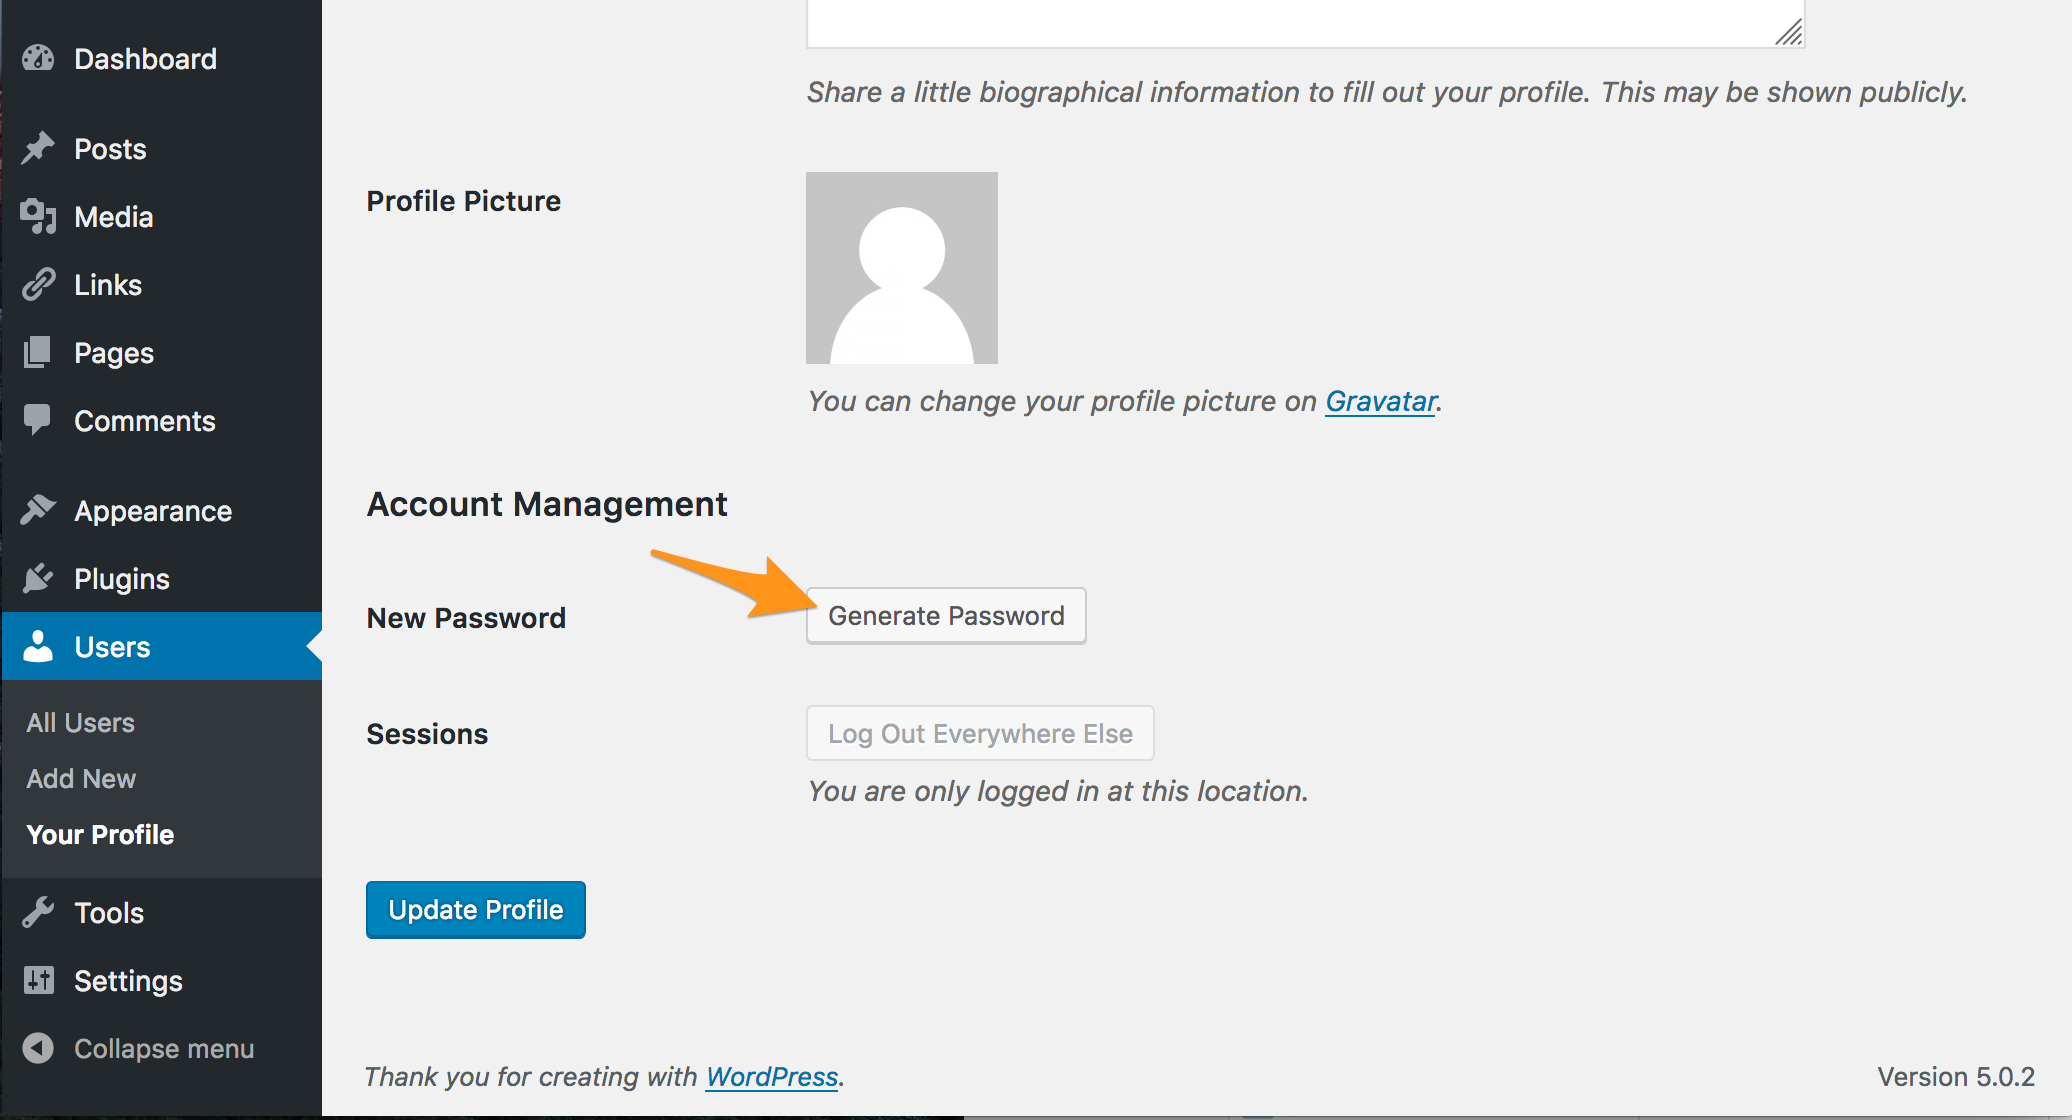 Navigate to Account Management. Then click Generate New Password.